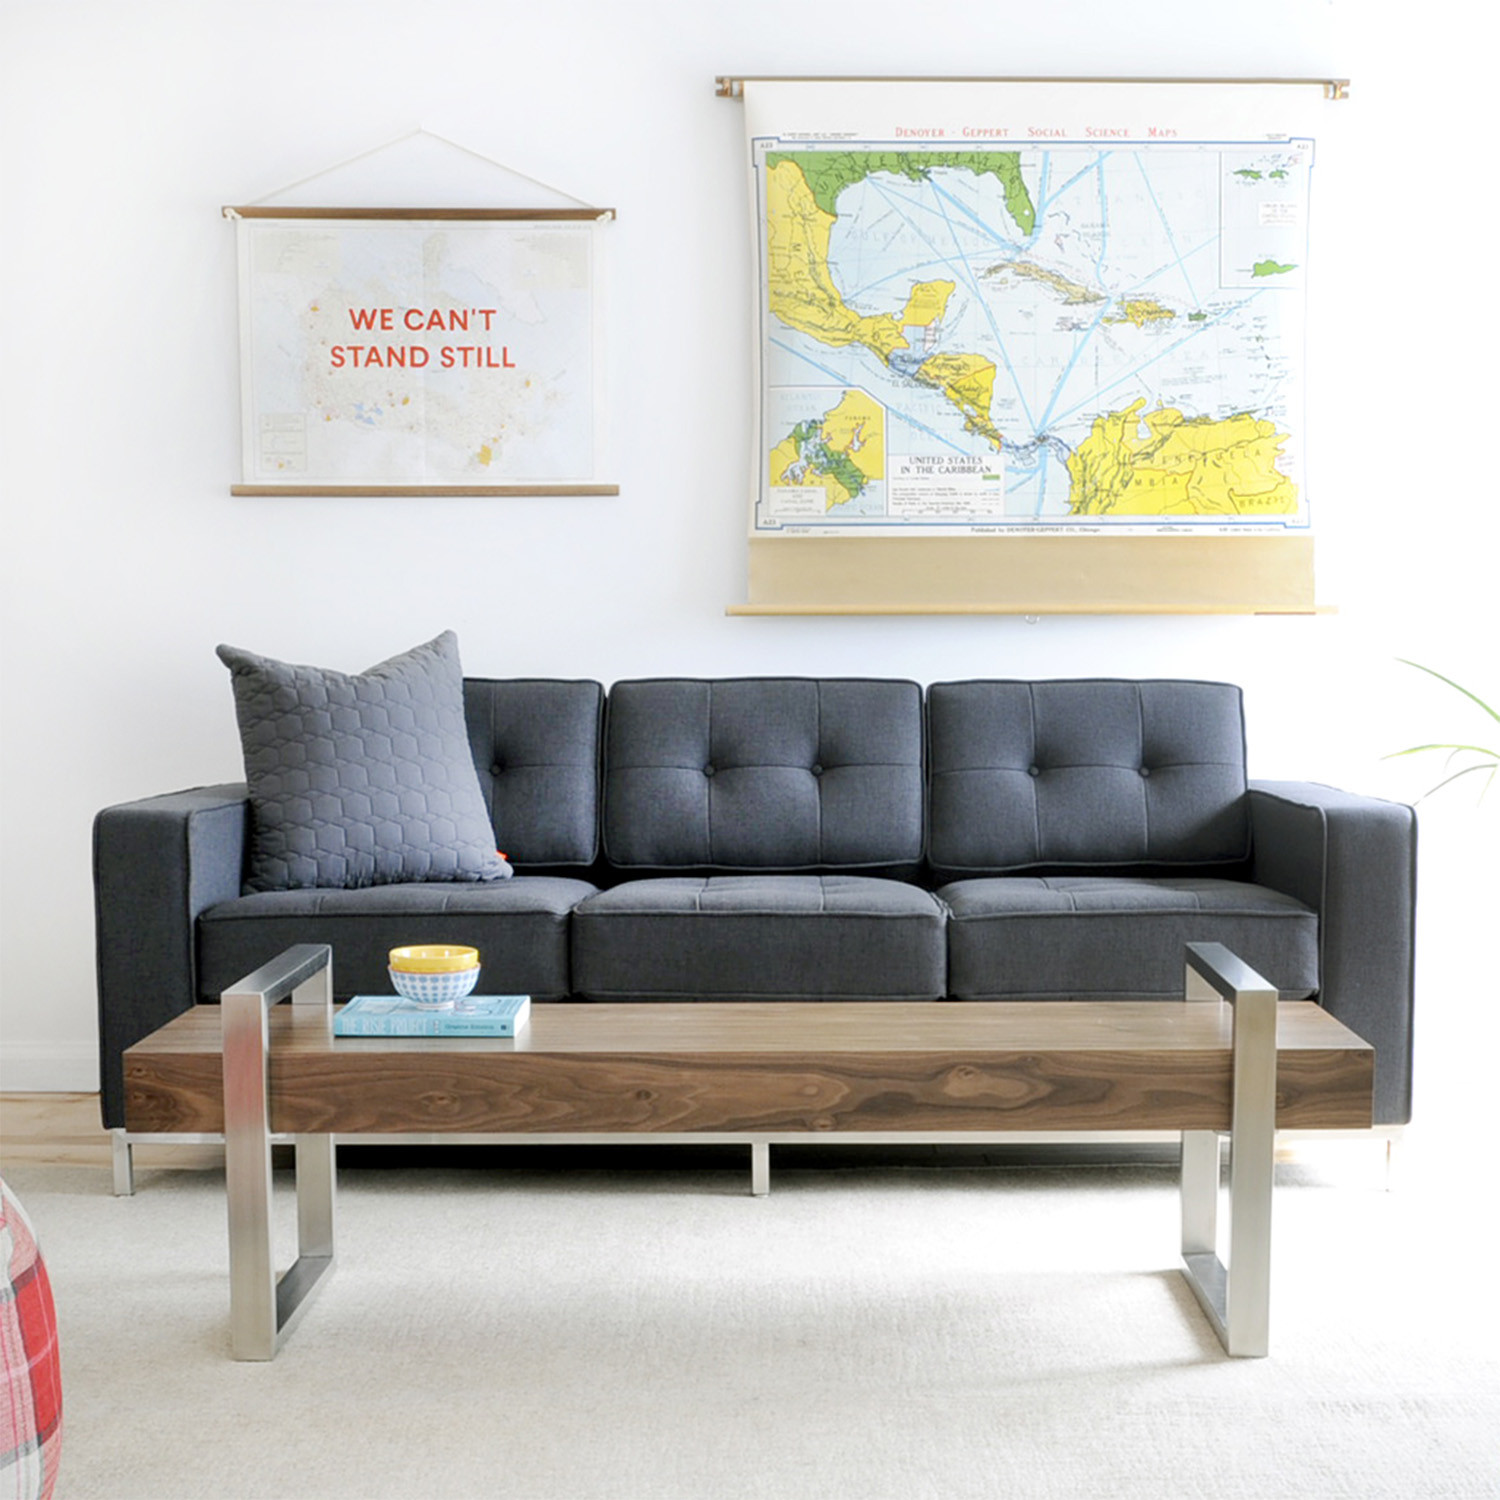 Gus Modern Bench Wood Benches With Storage